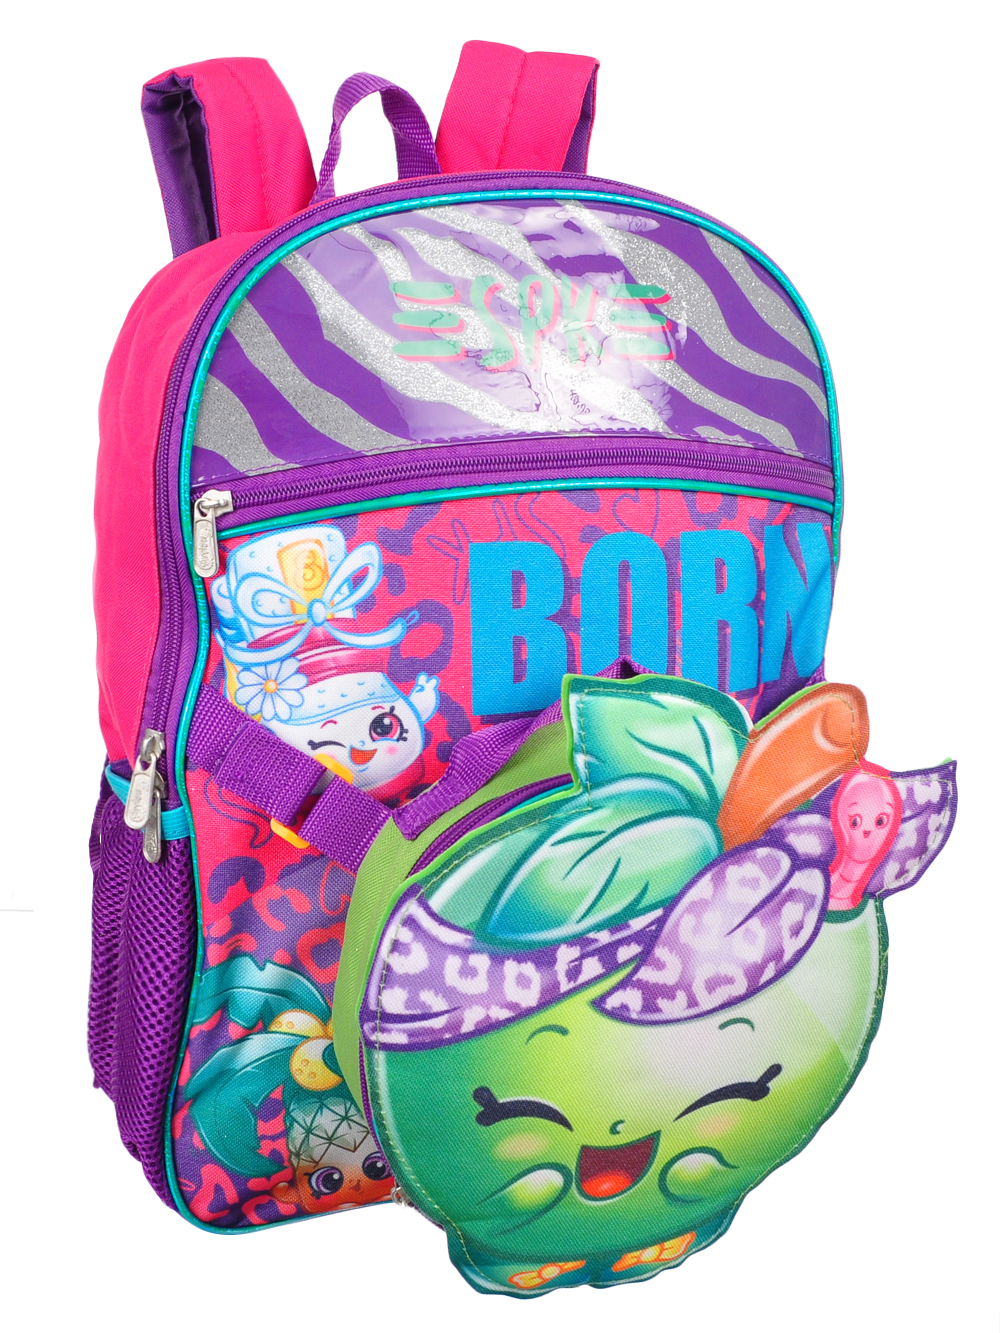 Shopkins Backpack with Insulated Lunchbox 04fa720208db0